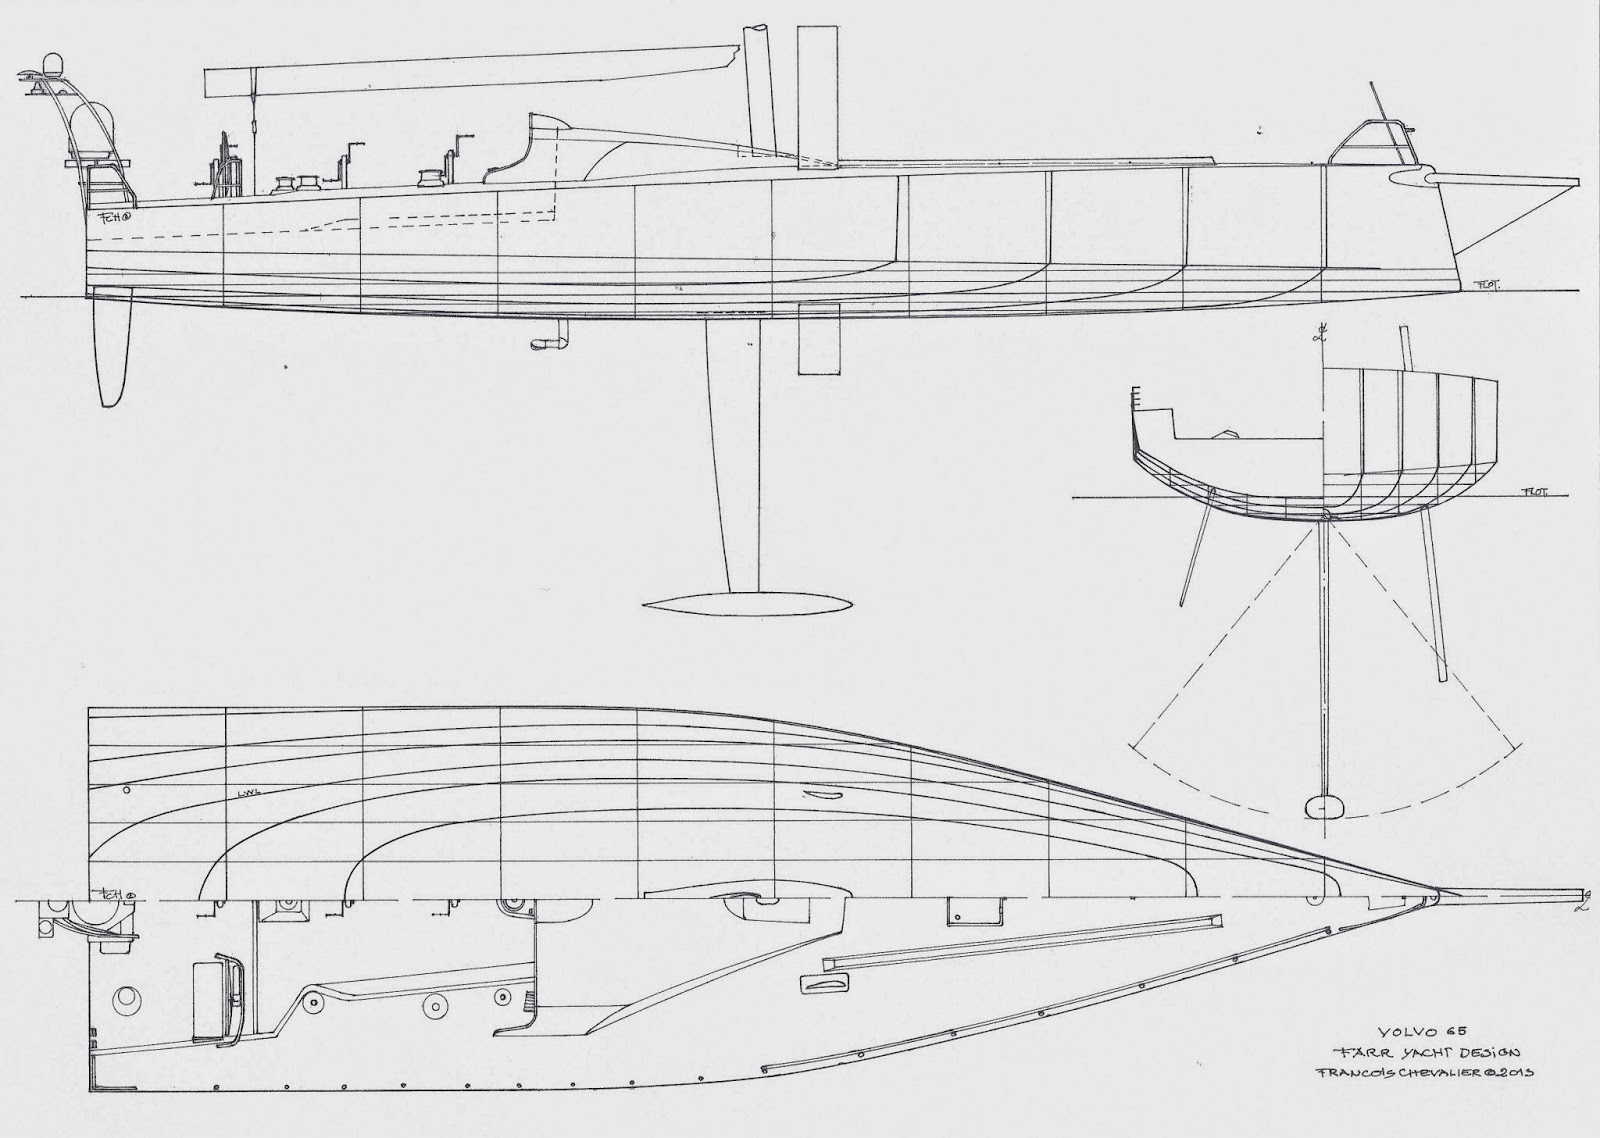 hight resolution of chevalier taglang volvo ocean race drawings and design evolution groasis waterboxx diagram racing yacht diagram